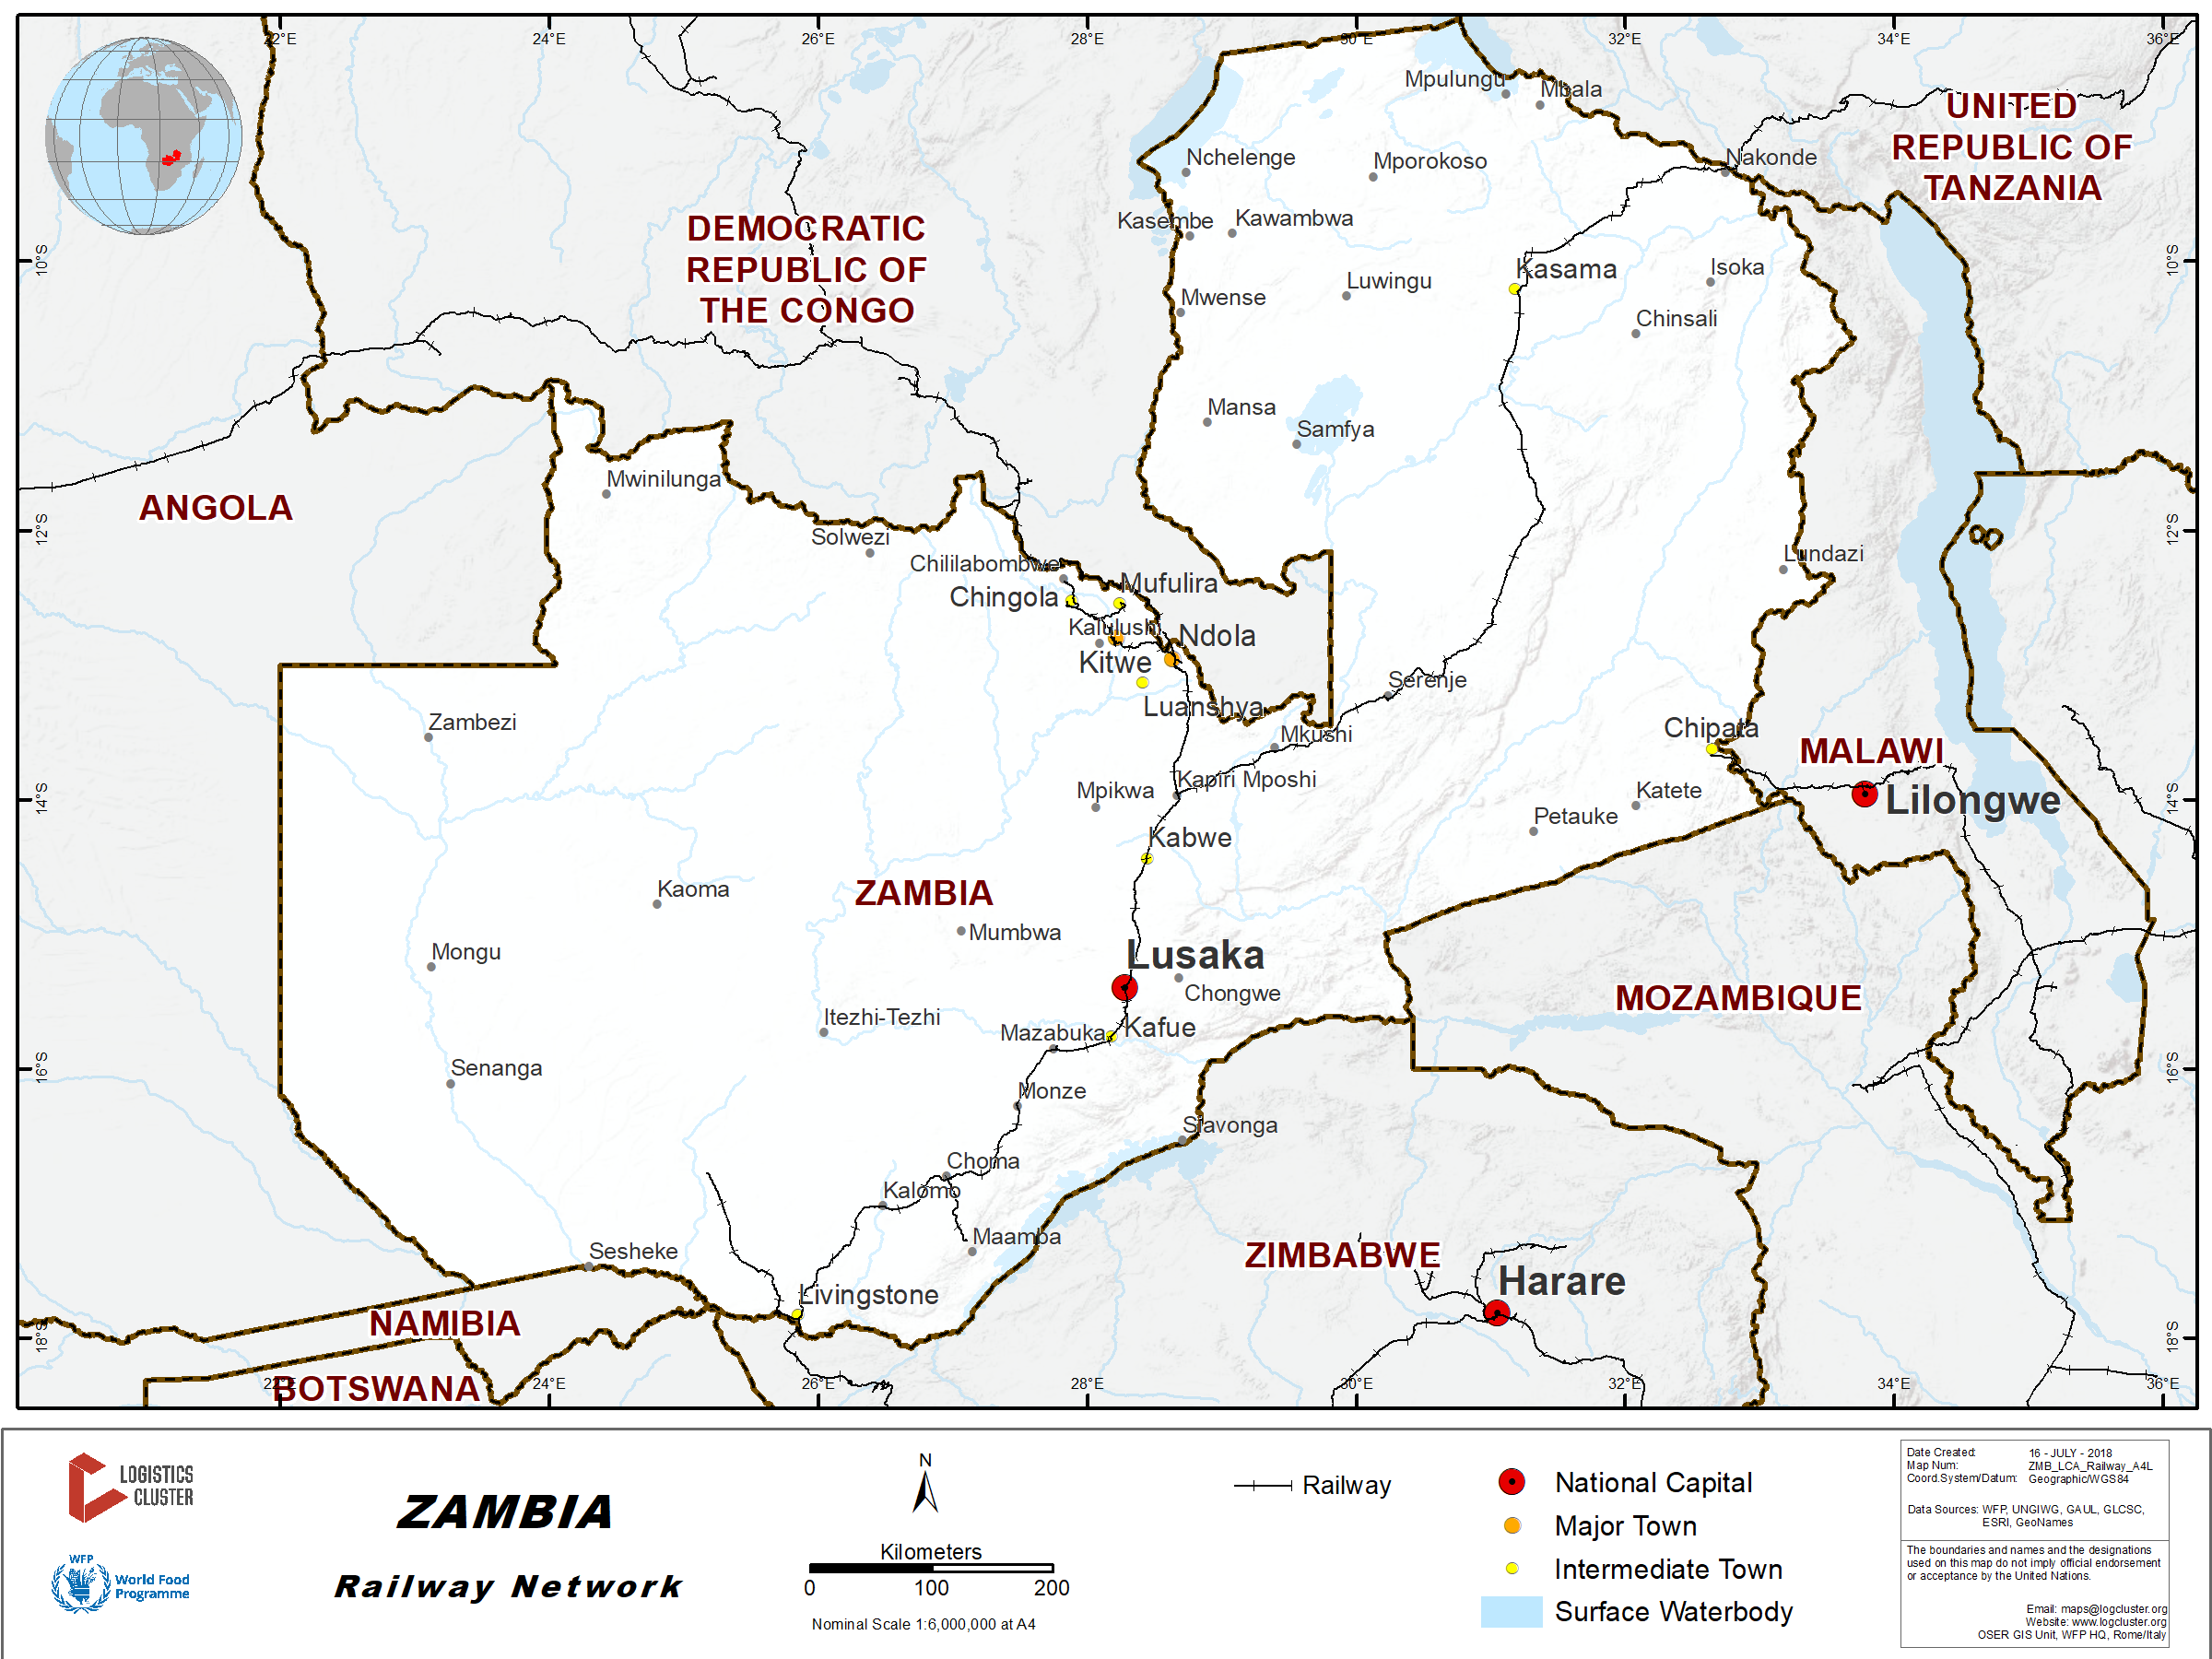 2 4 Zambia Railway Assessment - Logistics Capacity Assessment